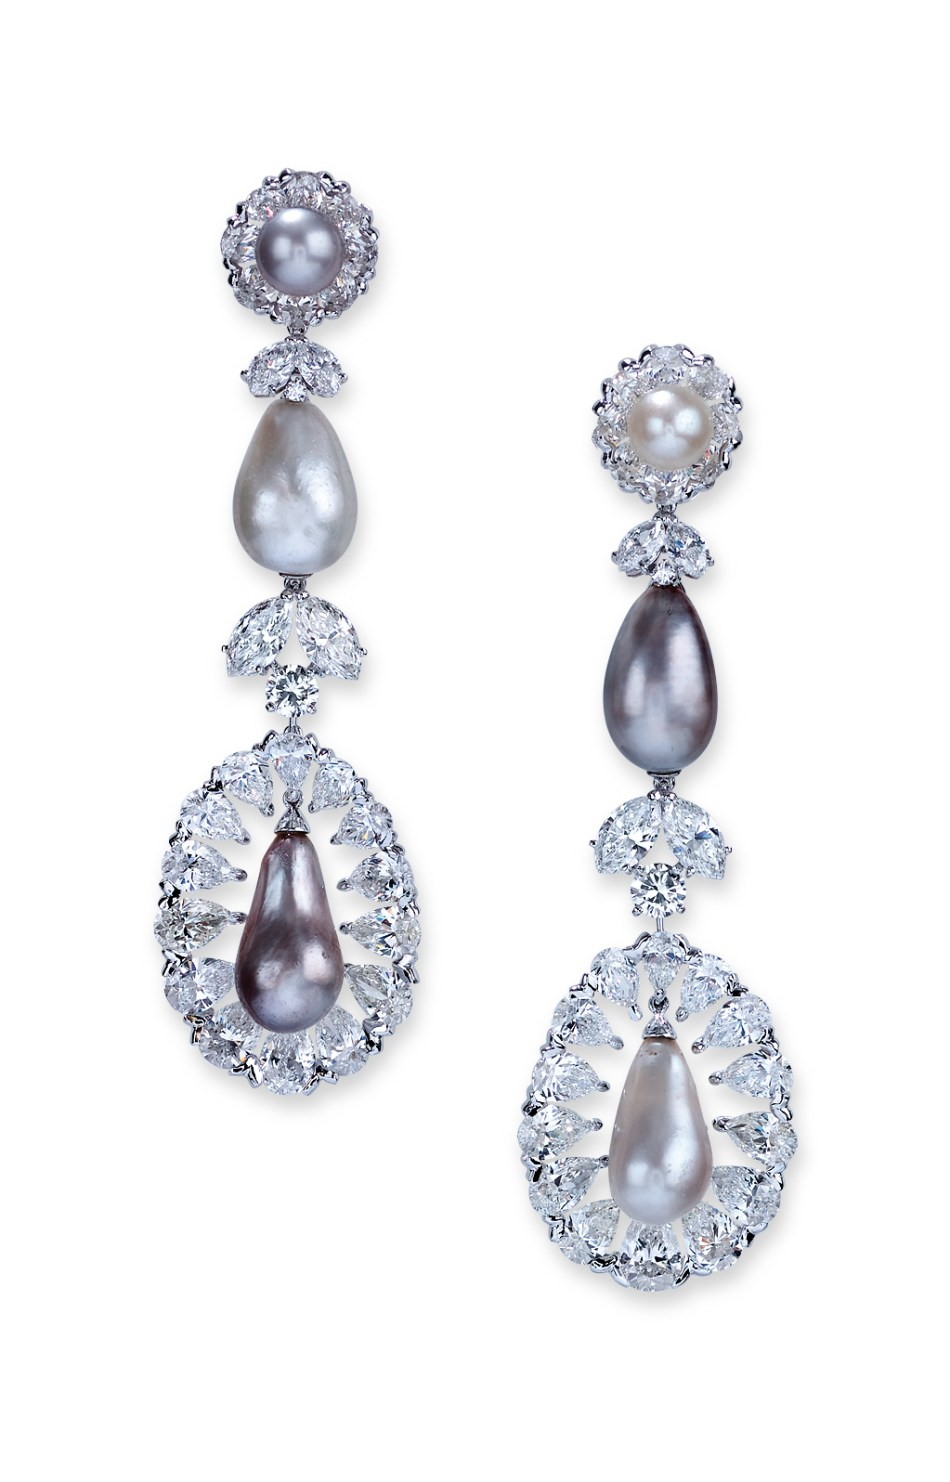 Moussaieff Pearl (87.02cts) and diamond (33.04cts) earrings set in platinum